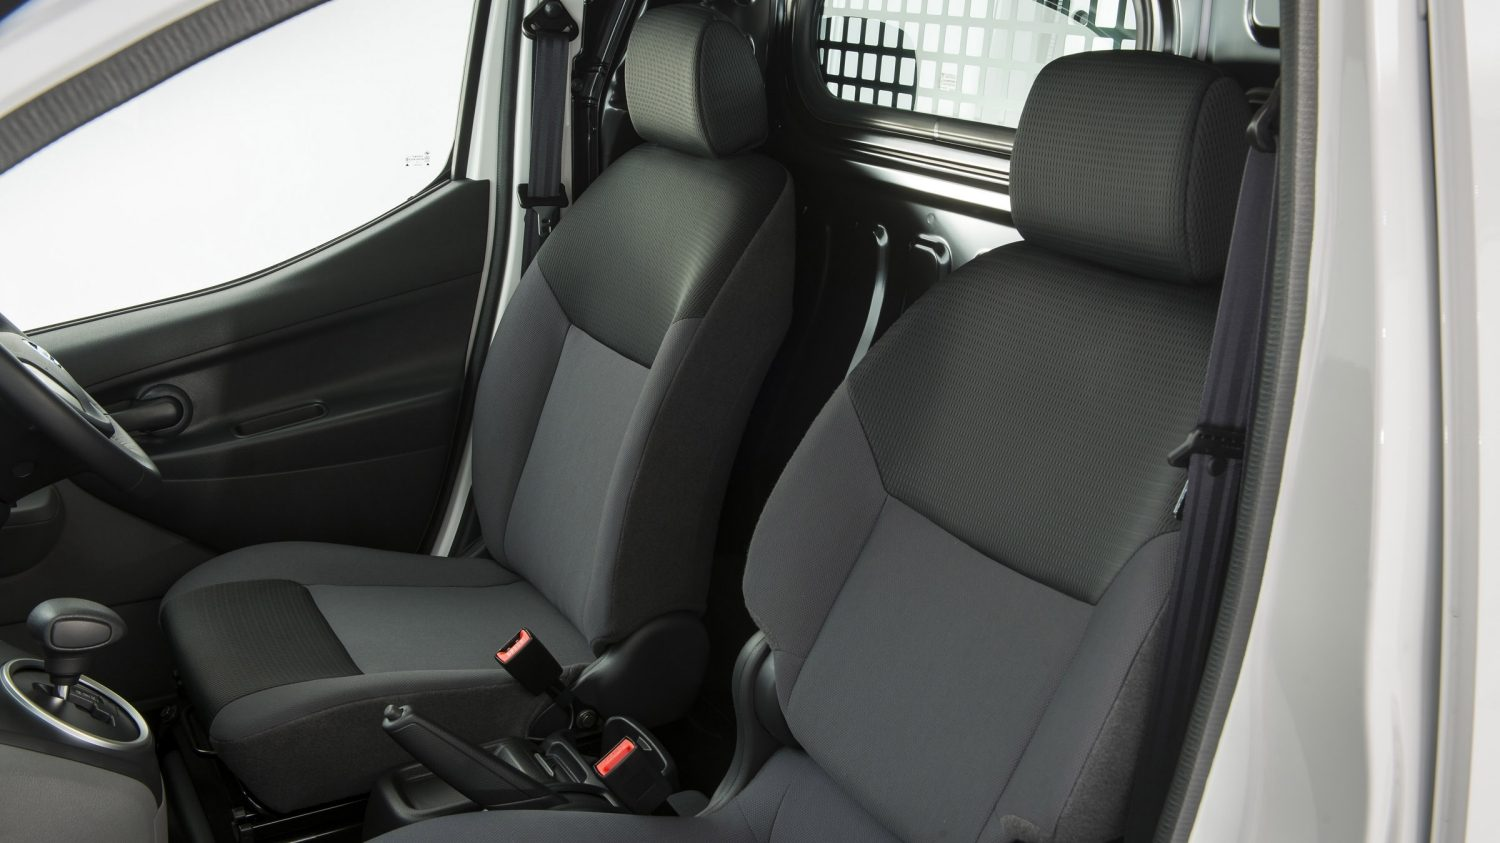 Van | Nissan e-NV200 | Heated seats